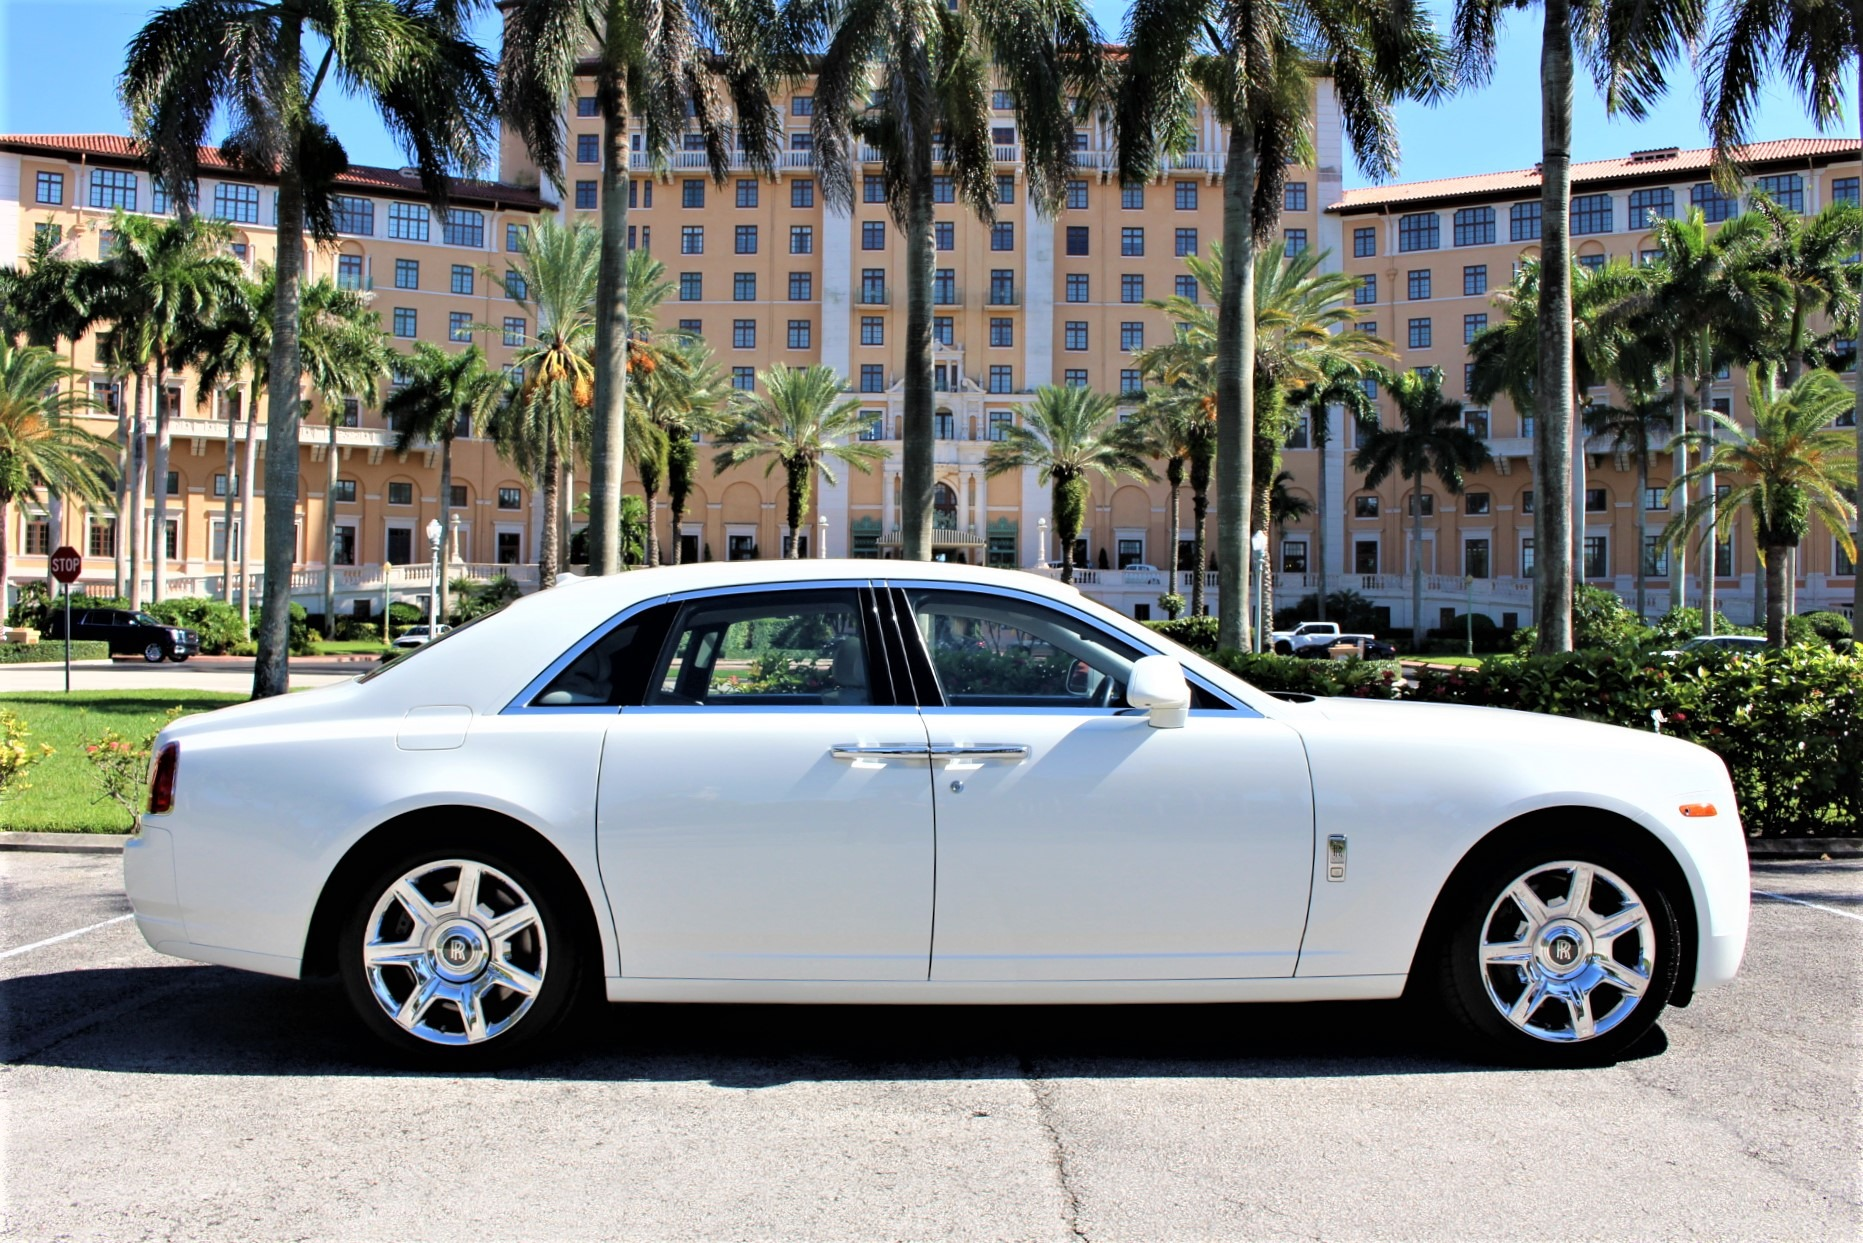 Used 2012 Rolls-Royce Ghost for sale $119,850 at The Gables Sports Cars in Miami FL 33146 1